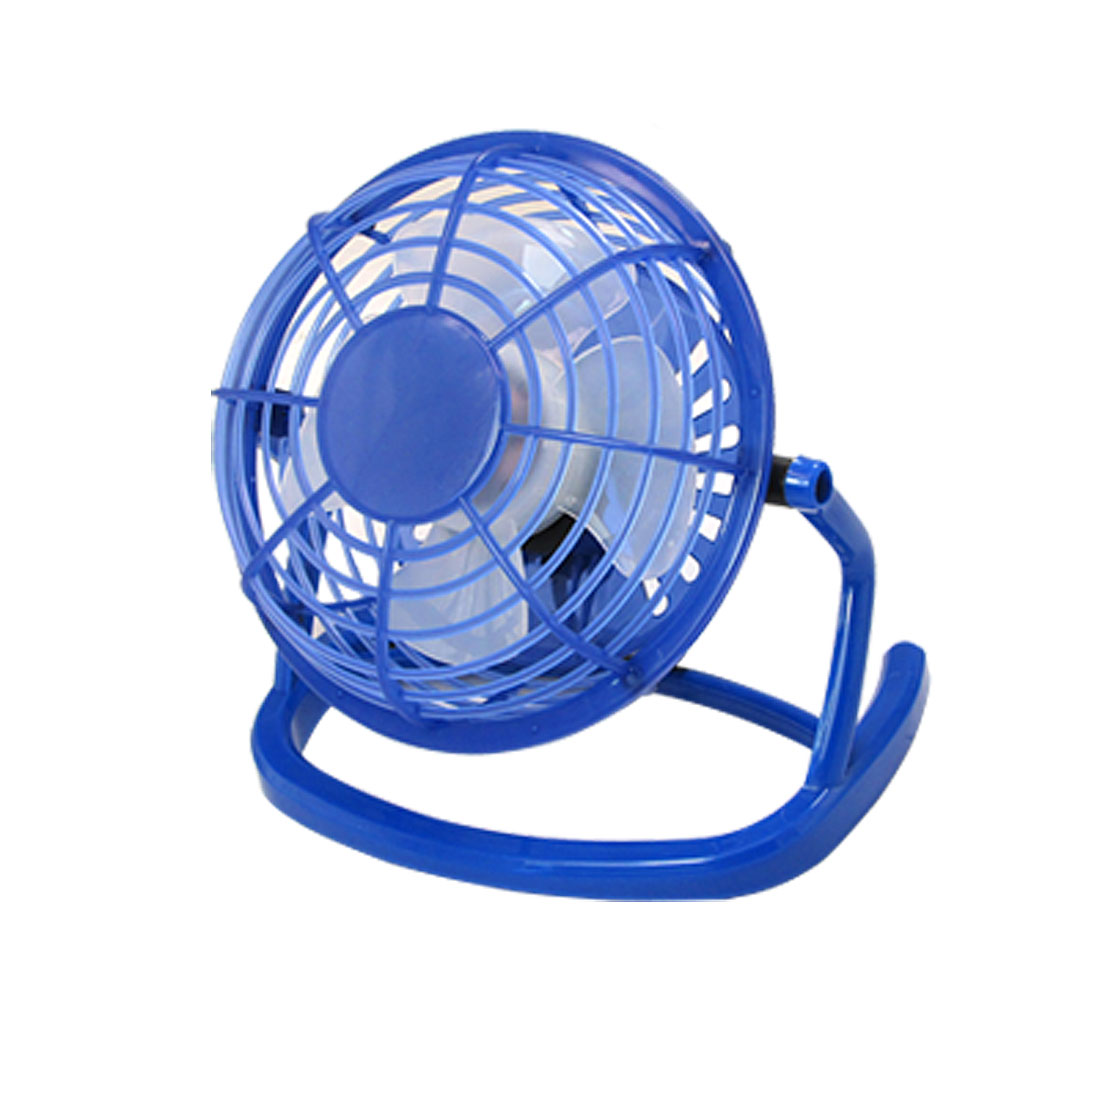 Blue Free Angle USB Plastic Laptop Desktop Cooler Cooling Fan